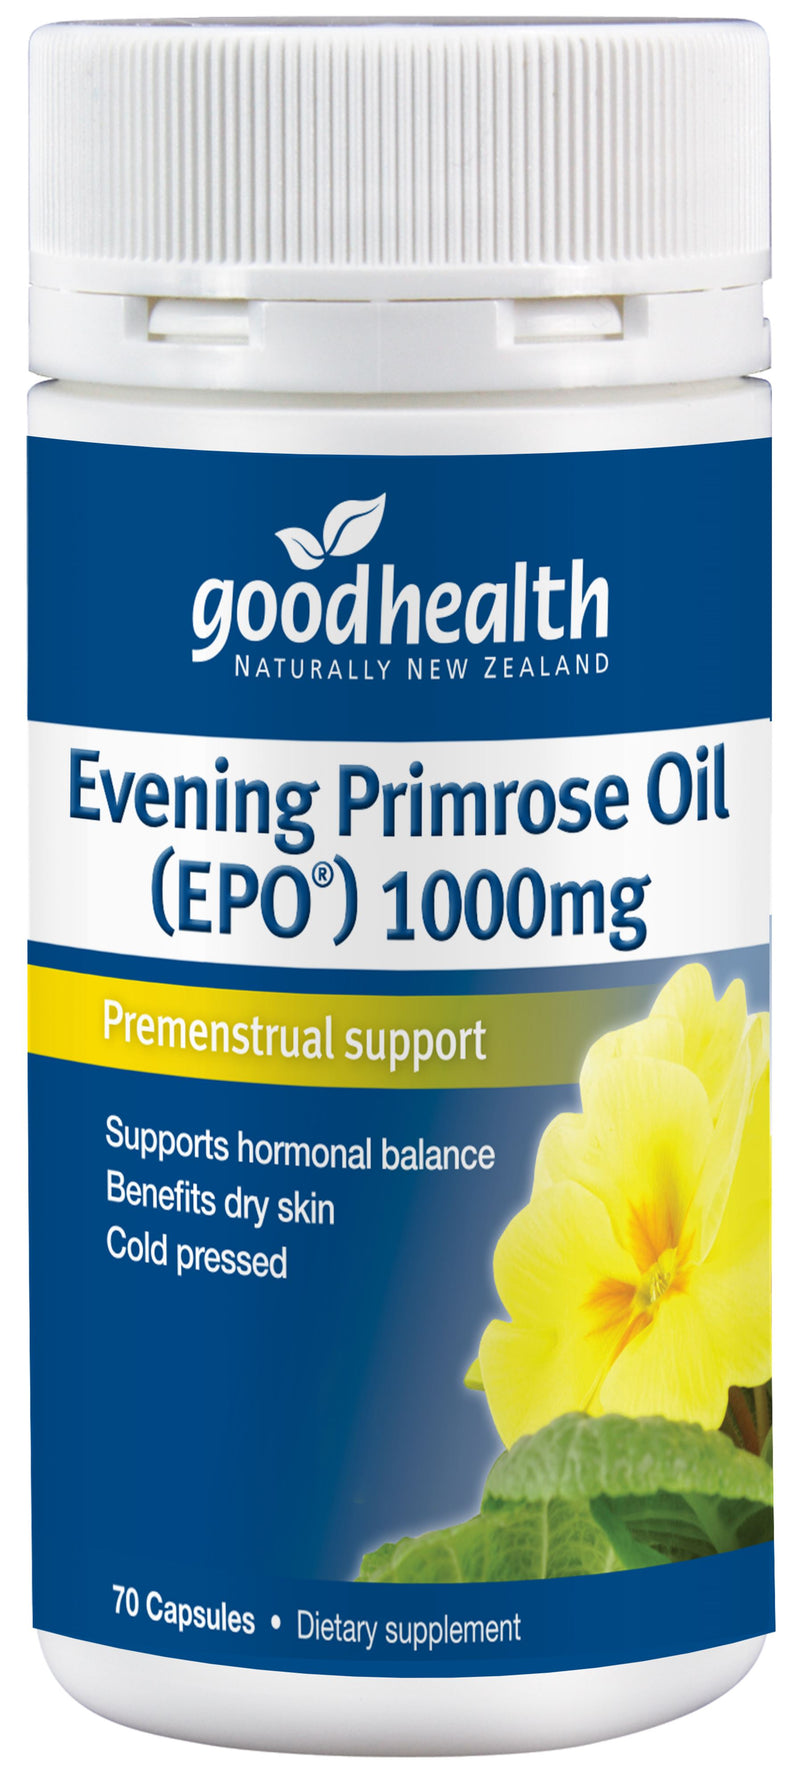 Evening Primrose Oil 1000mg - 70 Capsules